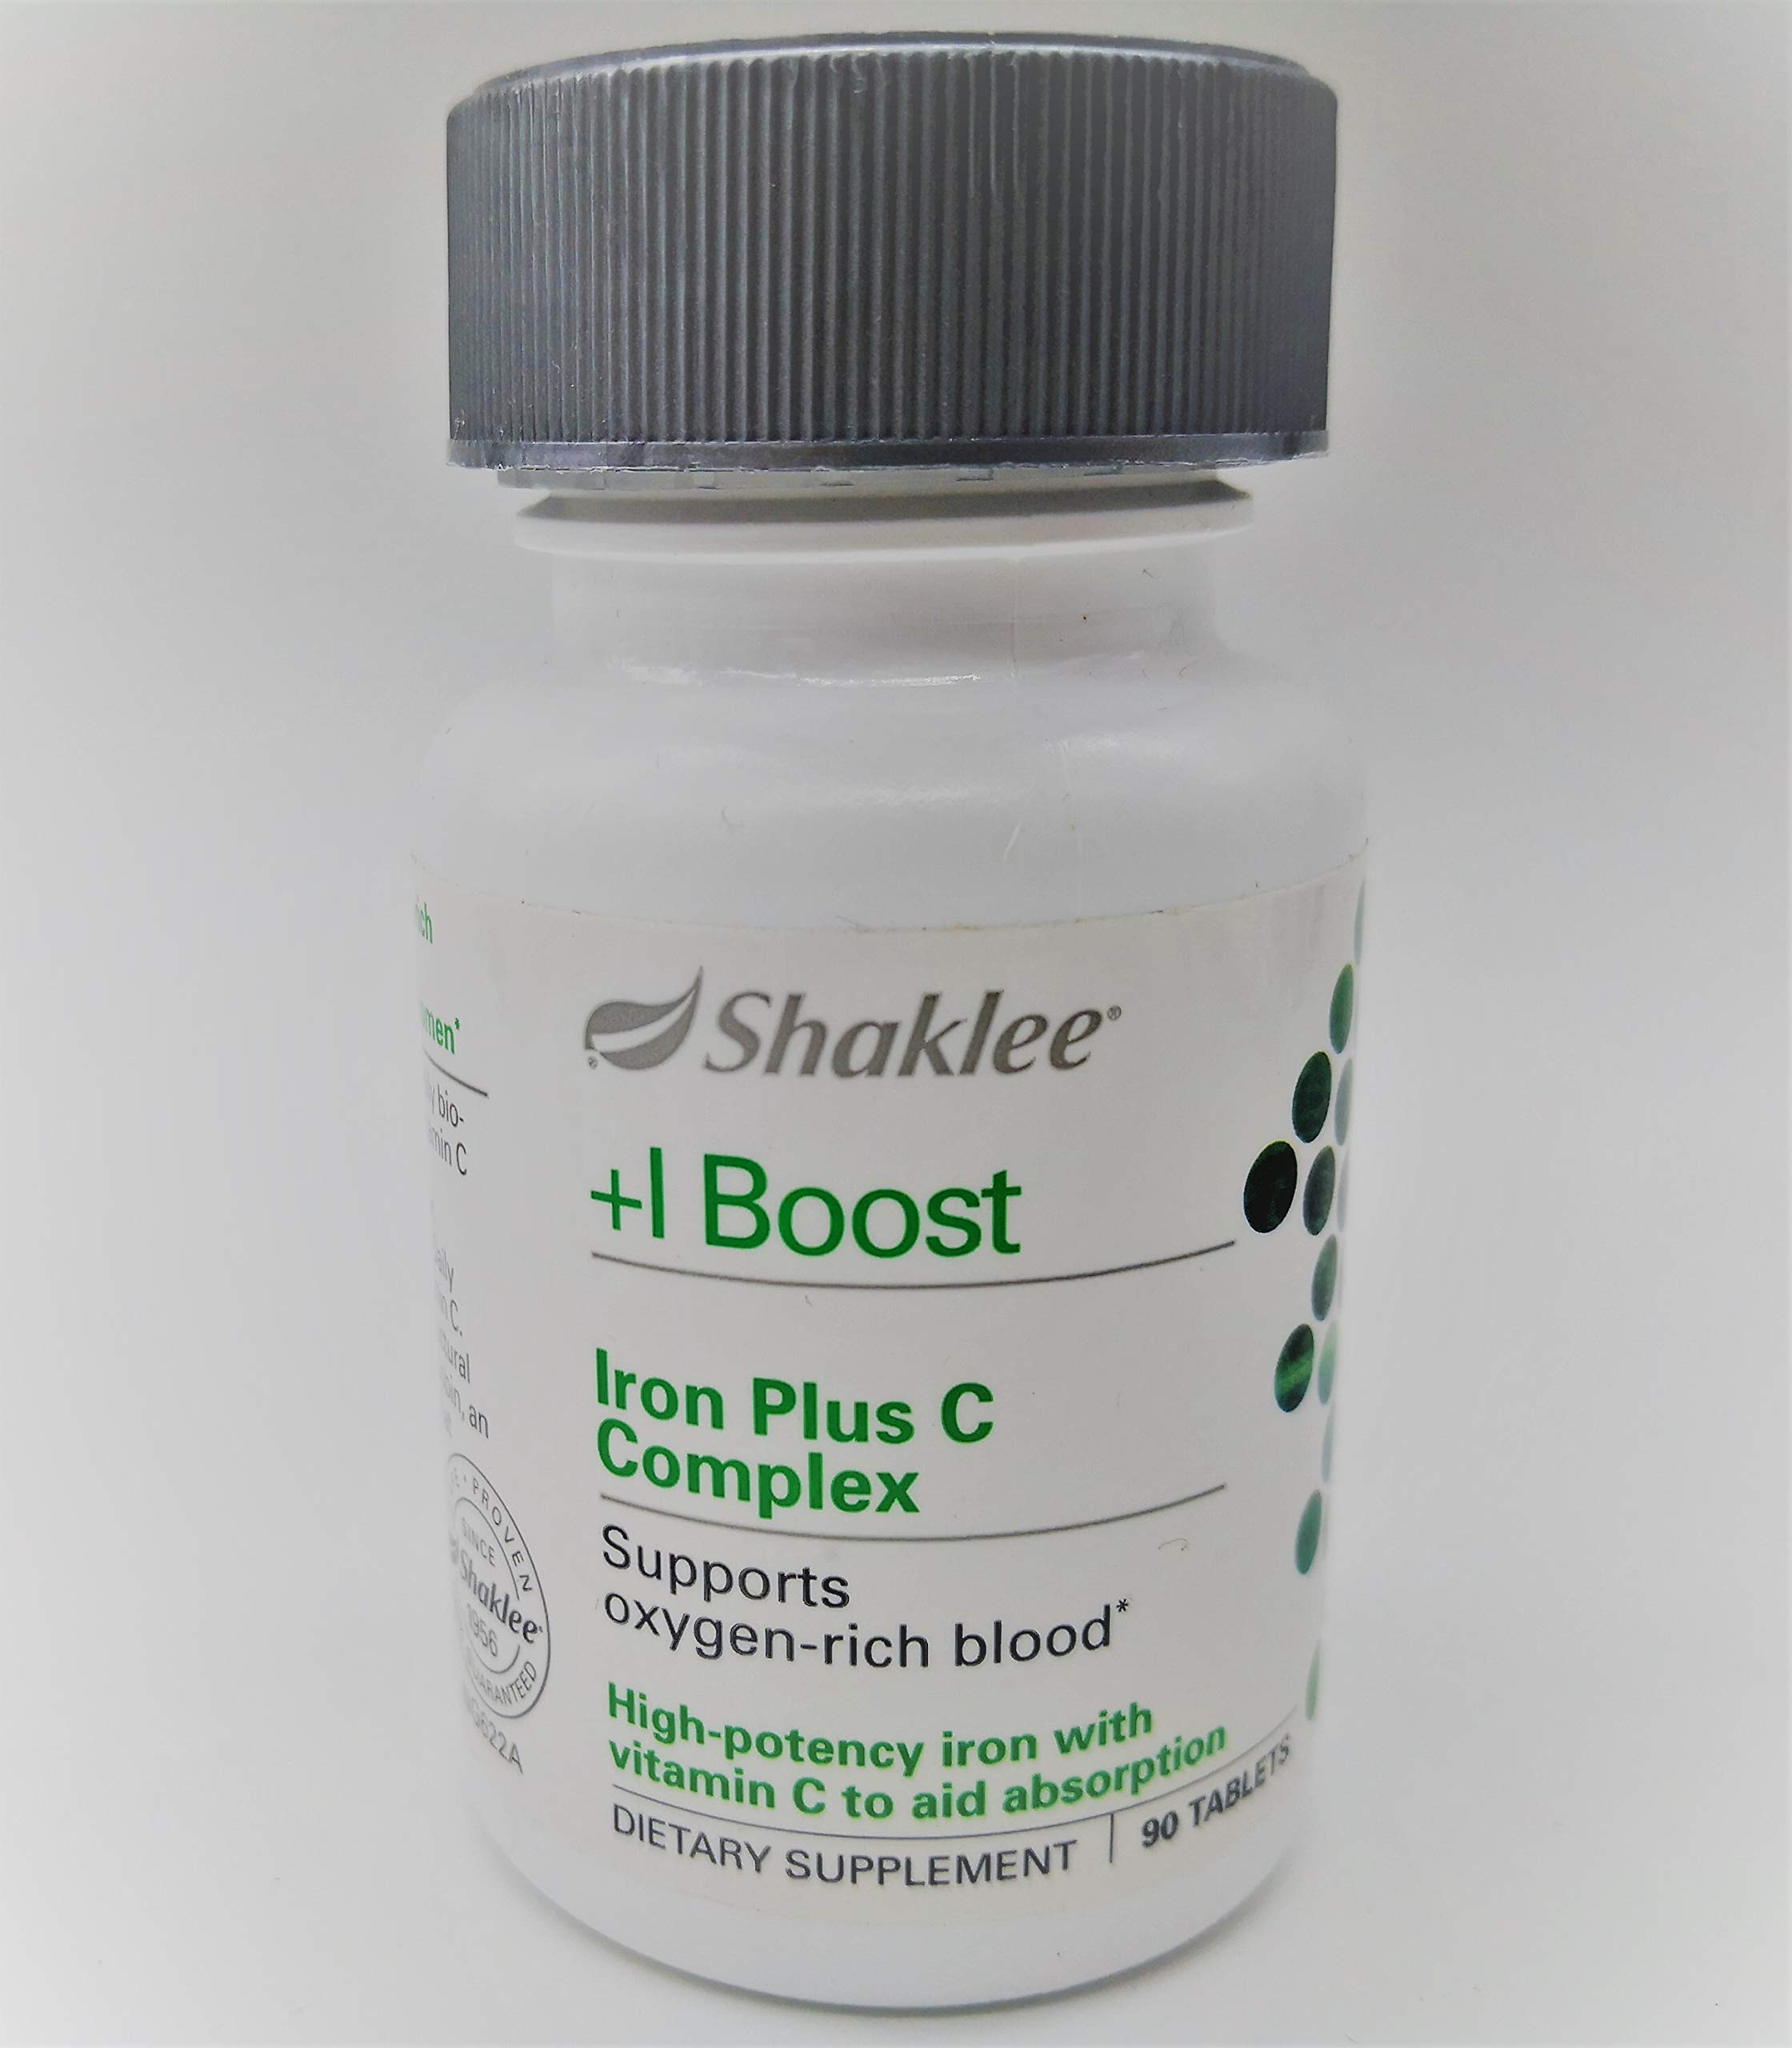 Shaklee Iron Plus C Complex 90 Ct Buy Online In India Hpc Products In India See Prices Reviews And Free Delivery Over 250 Desertcart